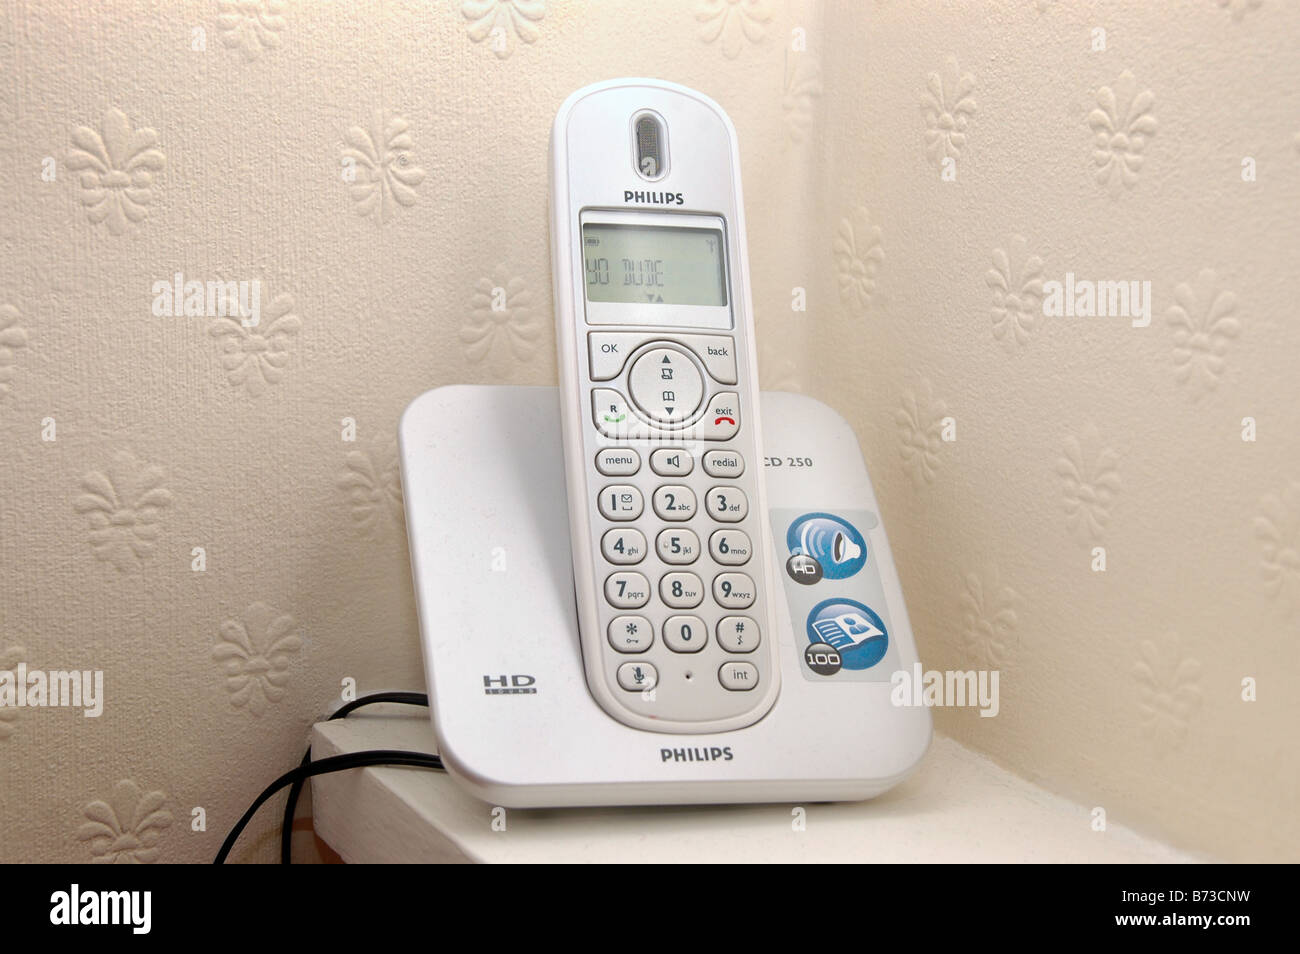 A cordless phone in a corner of a room. - Stock Image